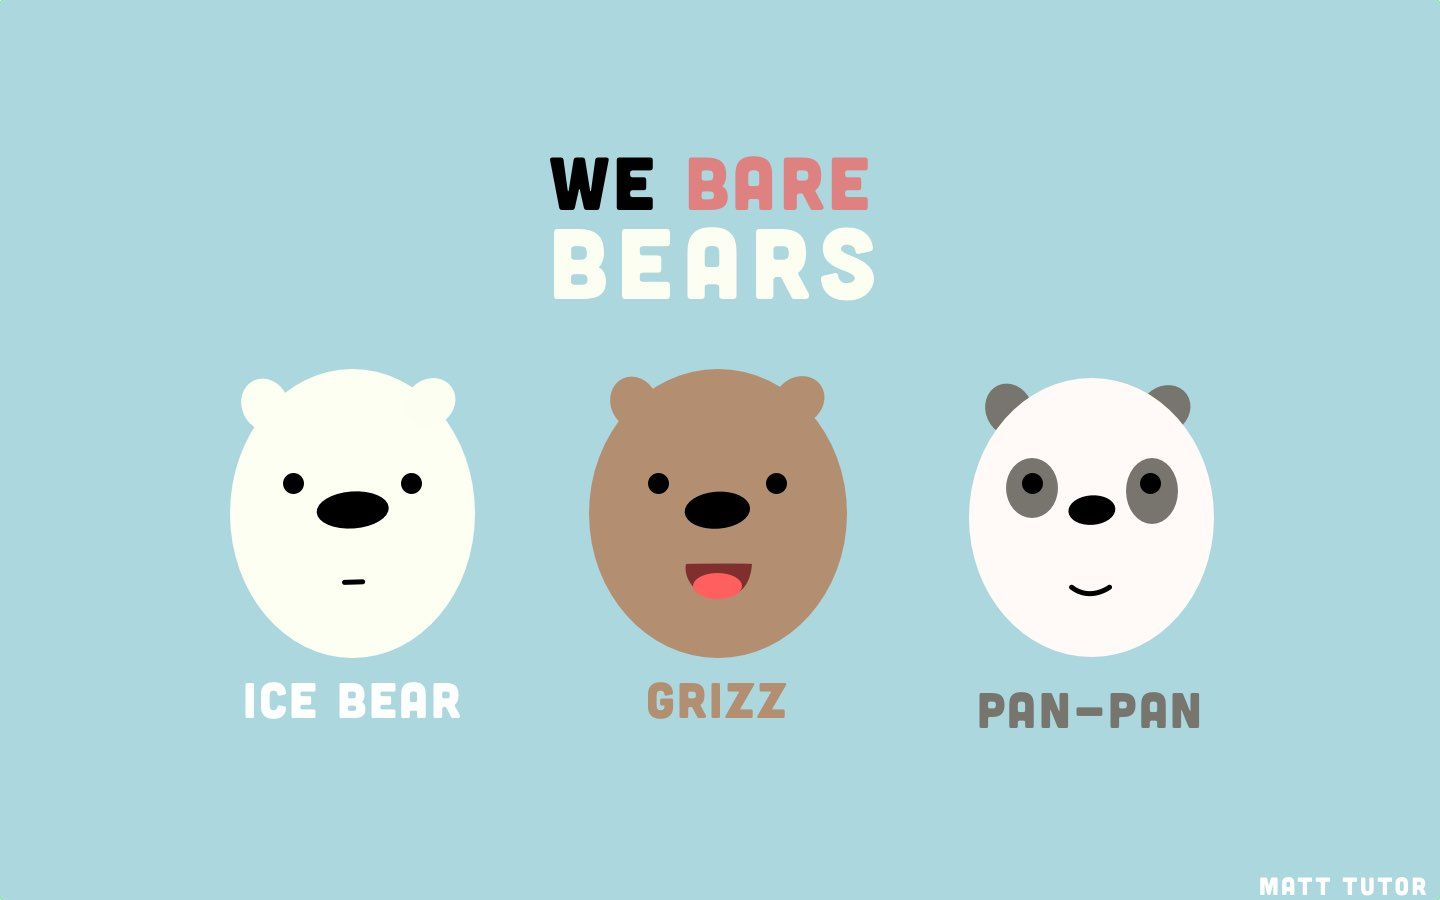 Minimalist We Bare Bears Wallpaper For Macbook Air 13 1440 X 900 Wallpaper Lucu Kartun Lucu